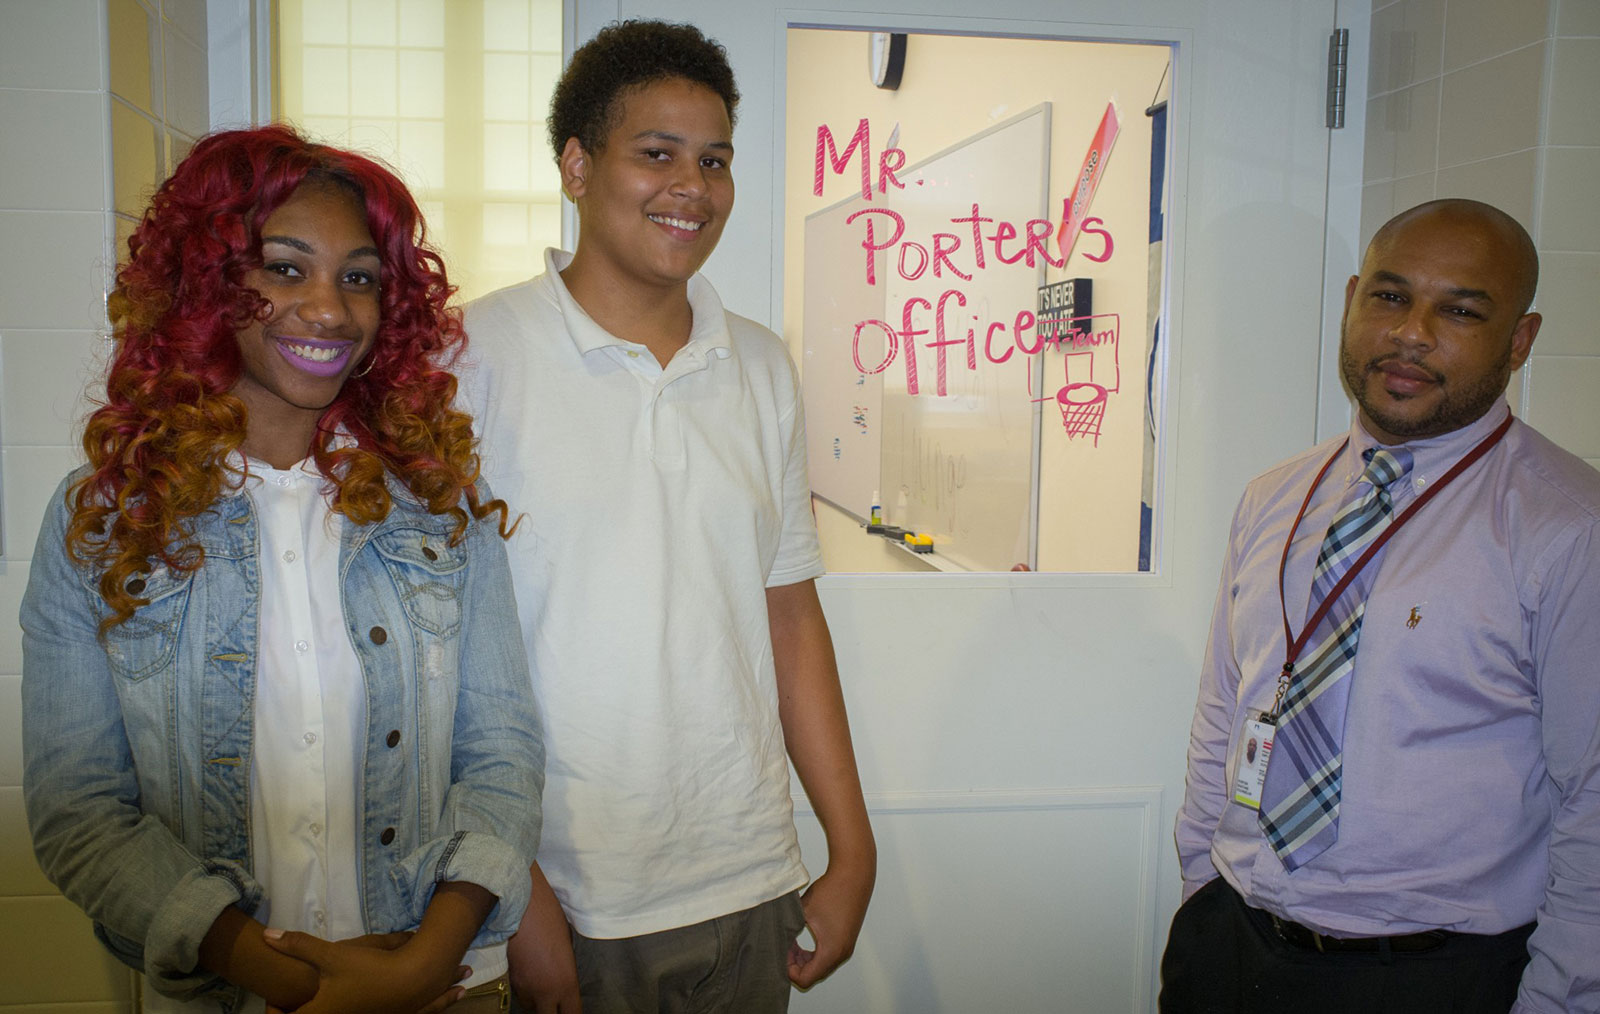 An amazing guidance counselor at Anacostia High with two of his students.